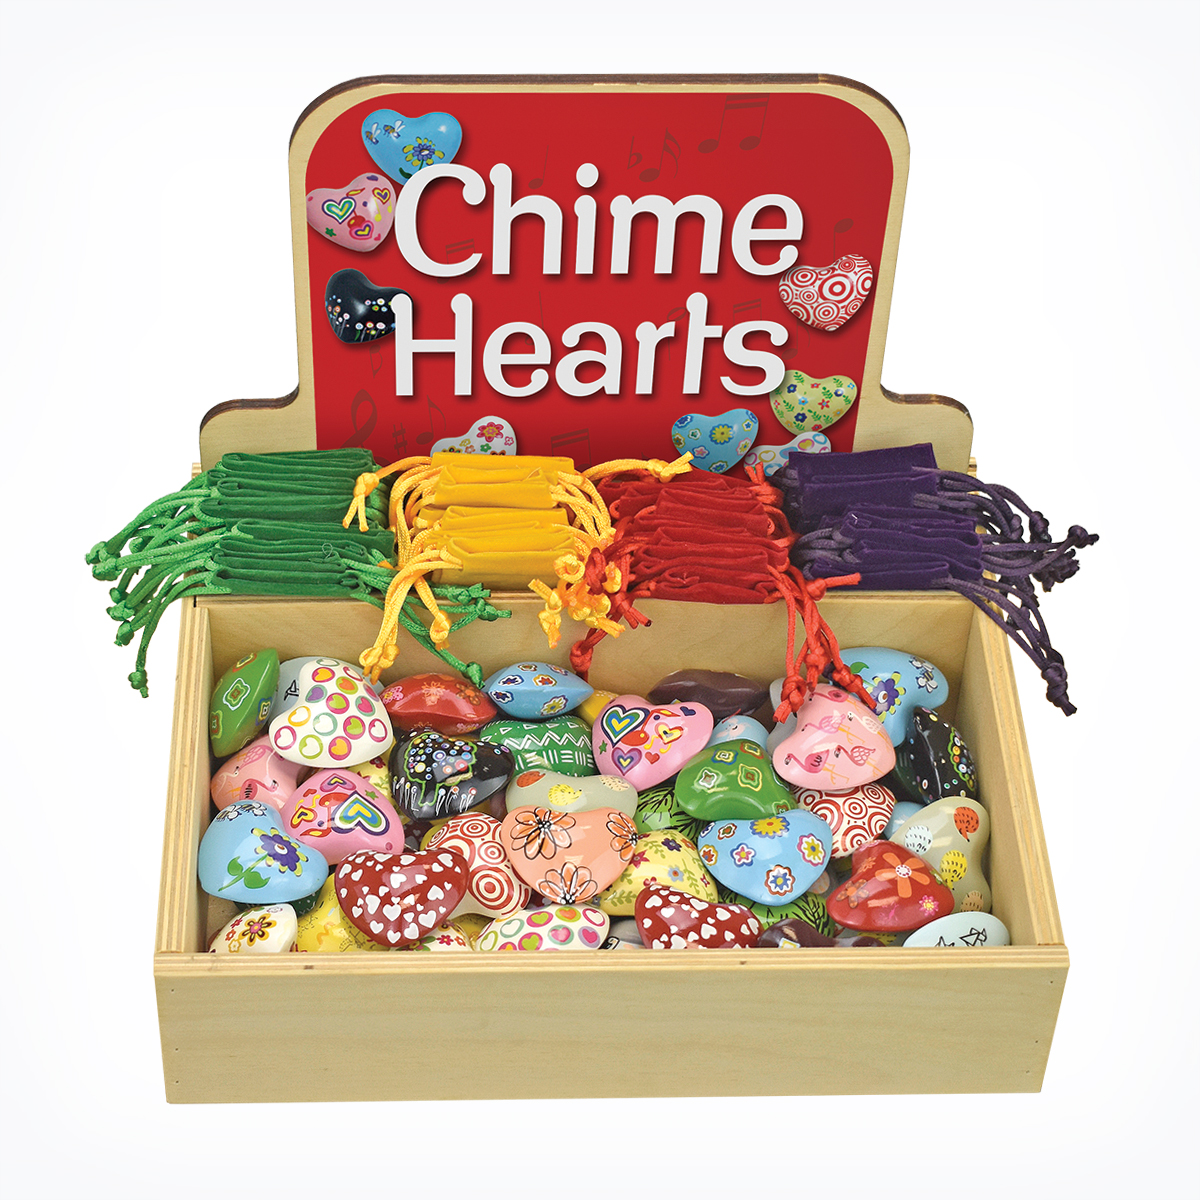 Chime Hearts Wood Display Geocentral